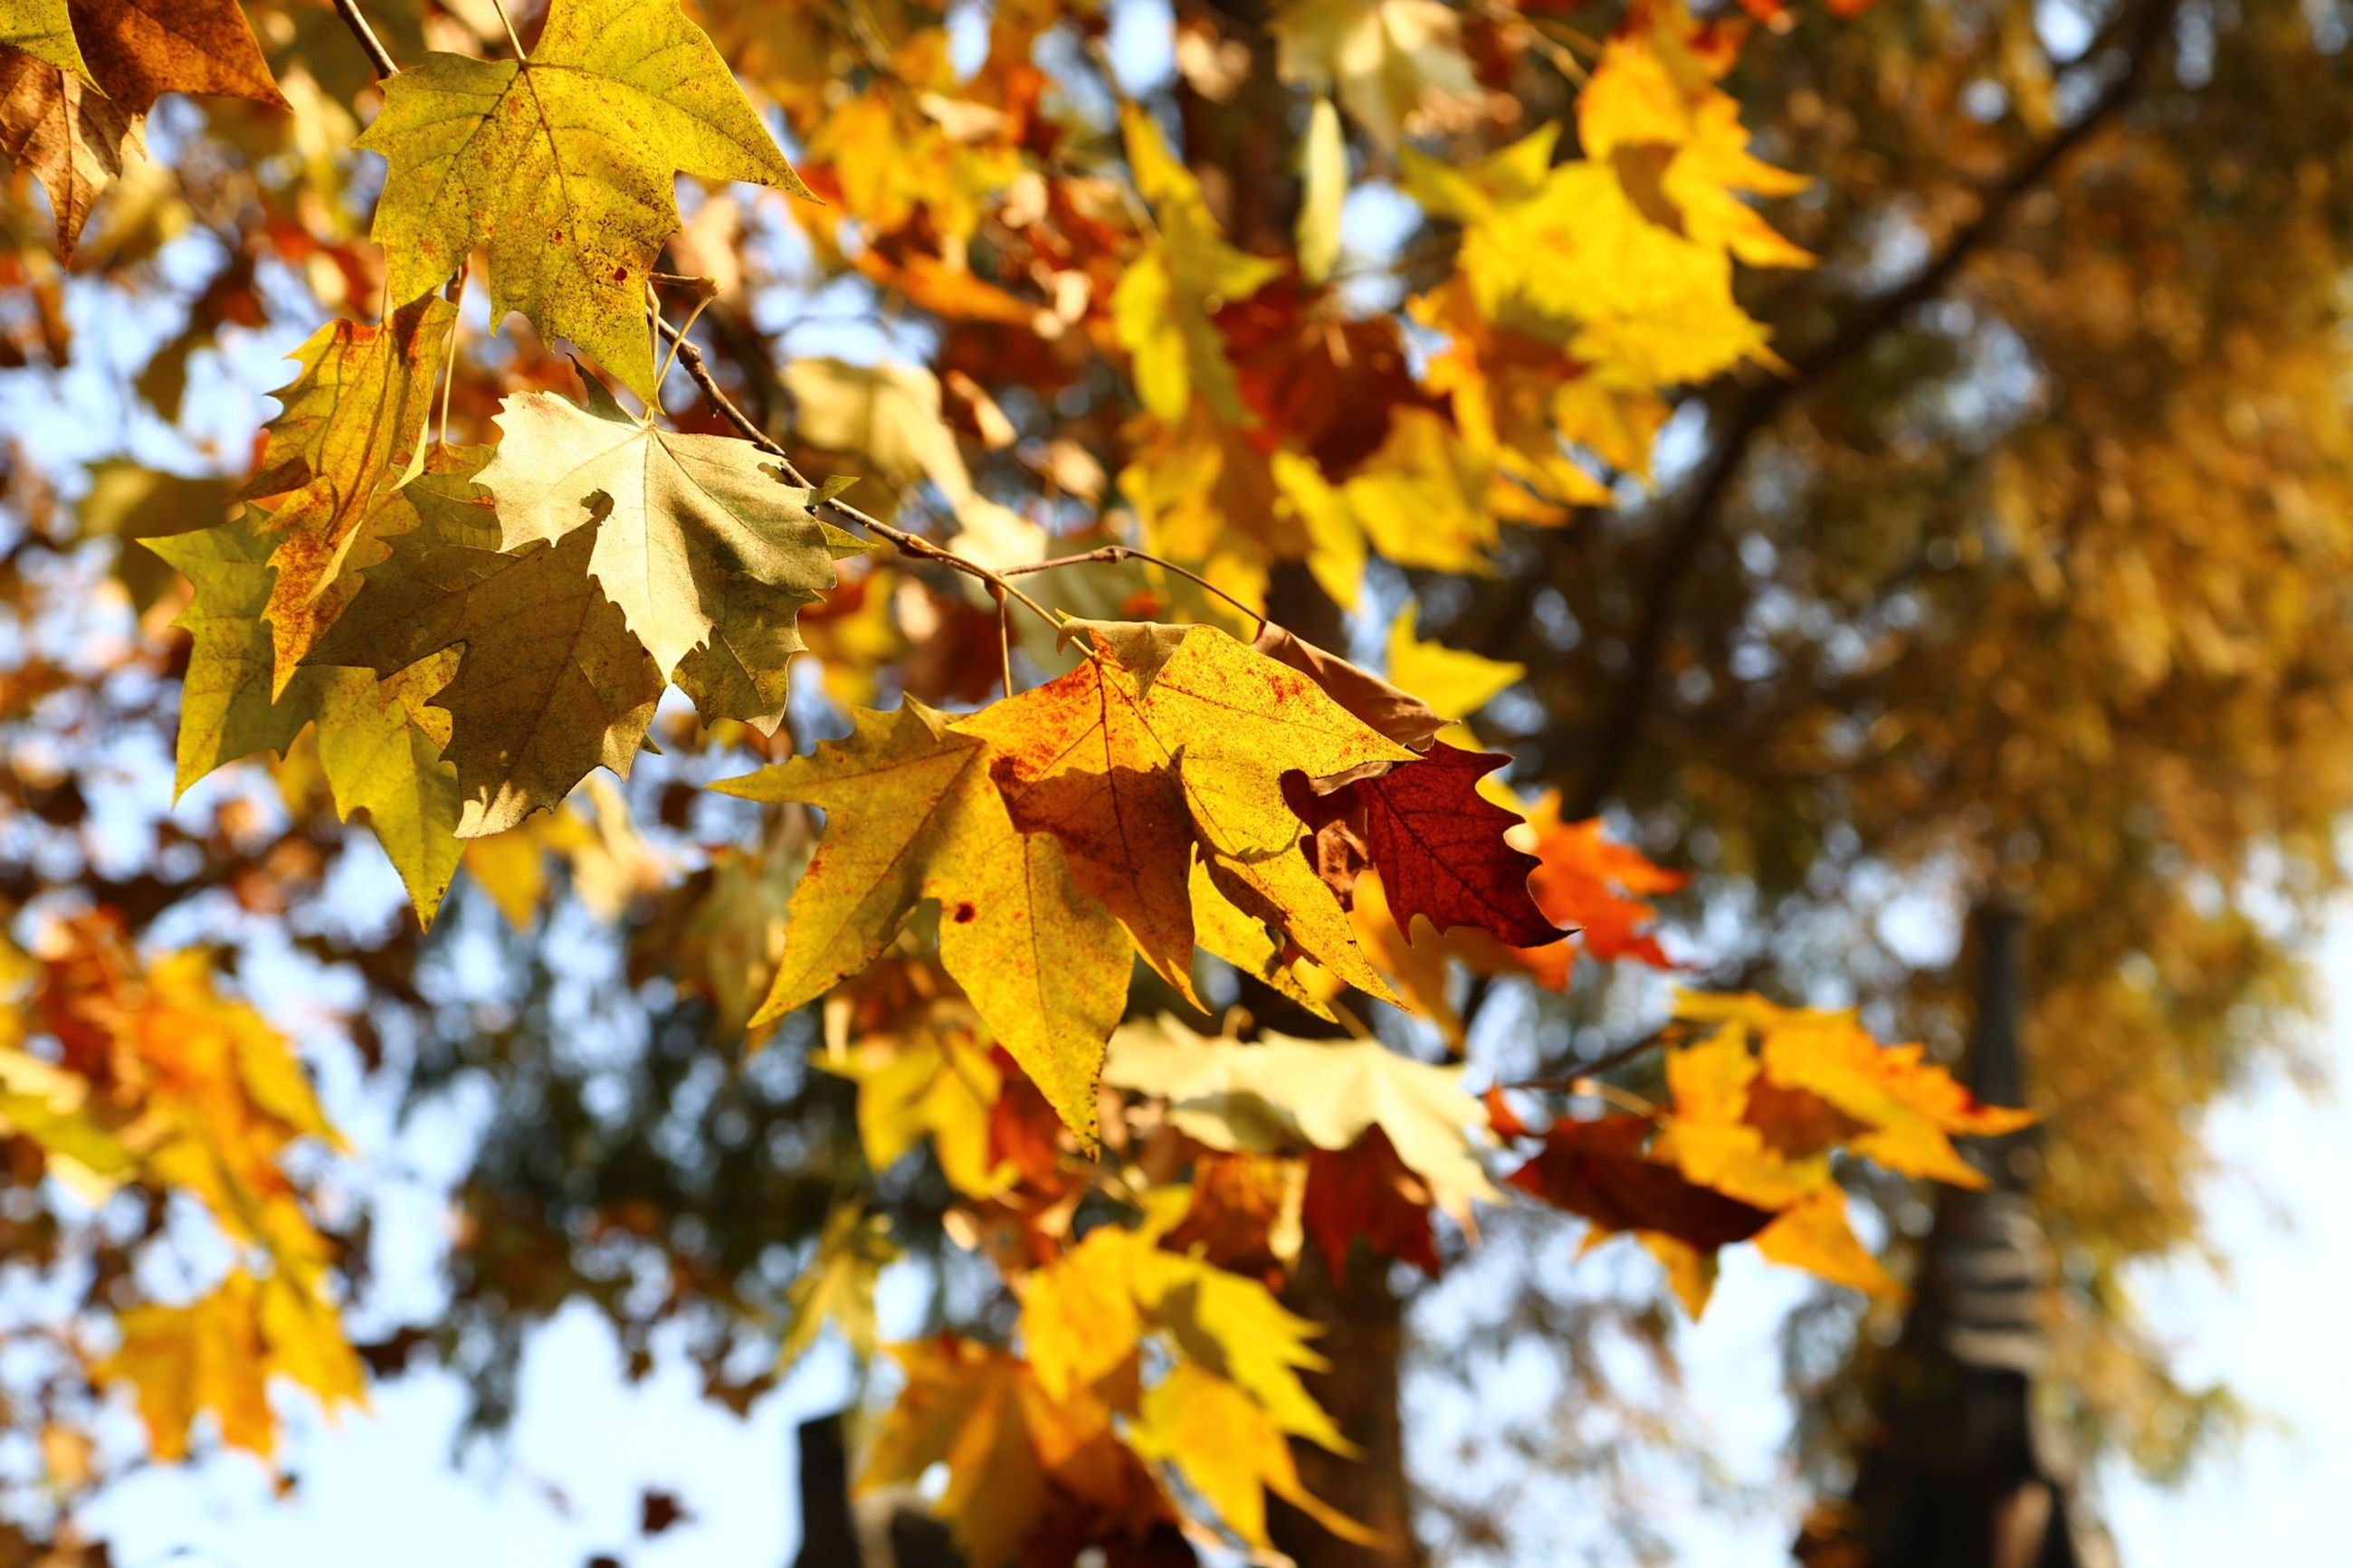 leaf, autumn, tree, change, branch, season, yellow, focus on foreground, leaves, nature, low angle view, close-up, growth, leaf vein, maple leaf, beauty in nature, day, selective focus, tranquility, sunlight